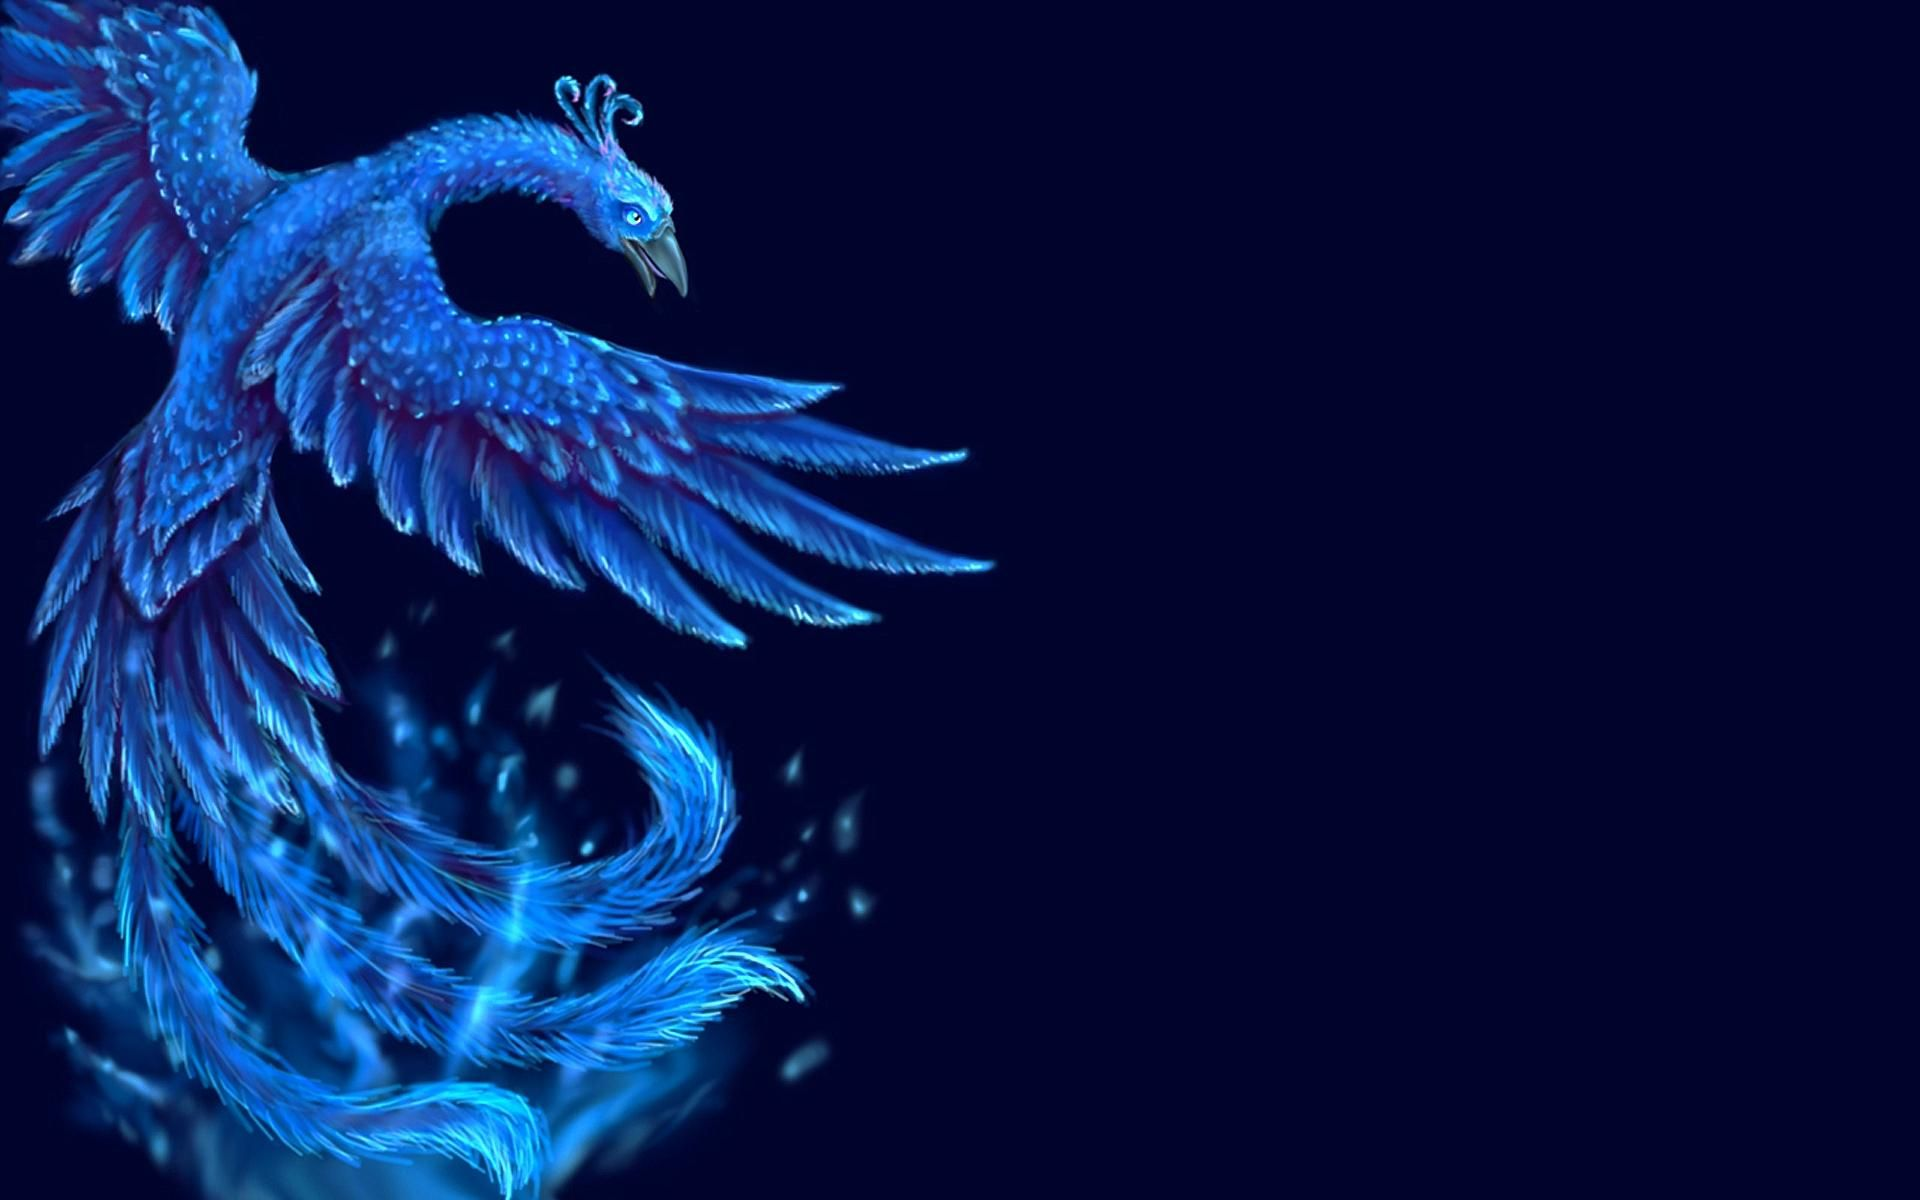 Phoenix Hd Wallpaper